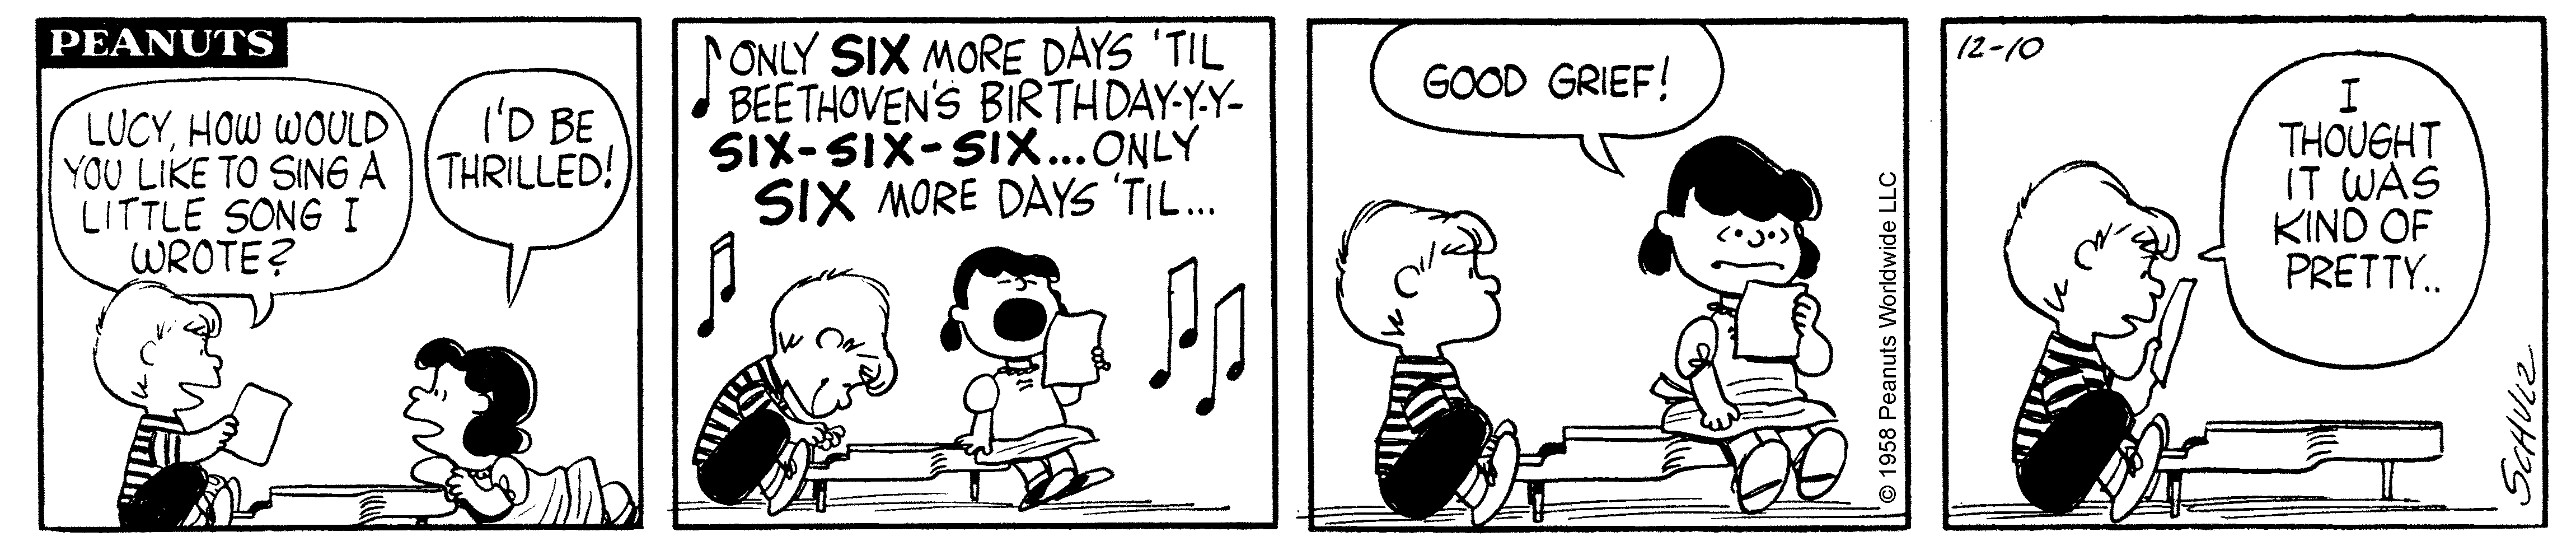 A black and white comic strip of a boy playing the piano and a dog kissing the boy.